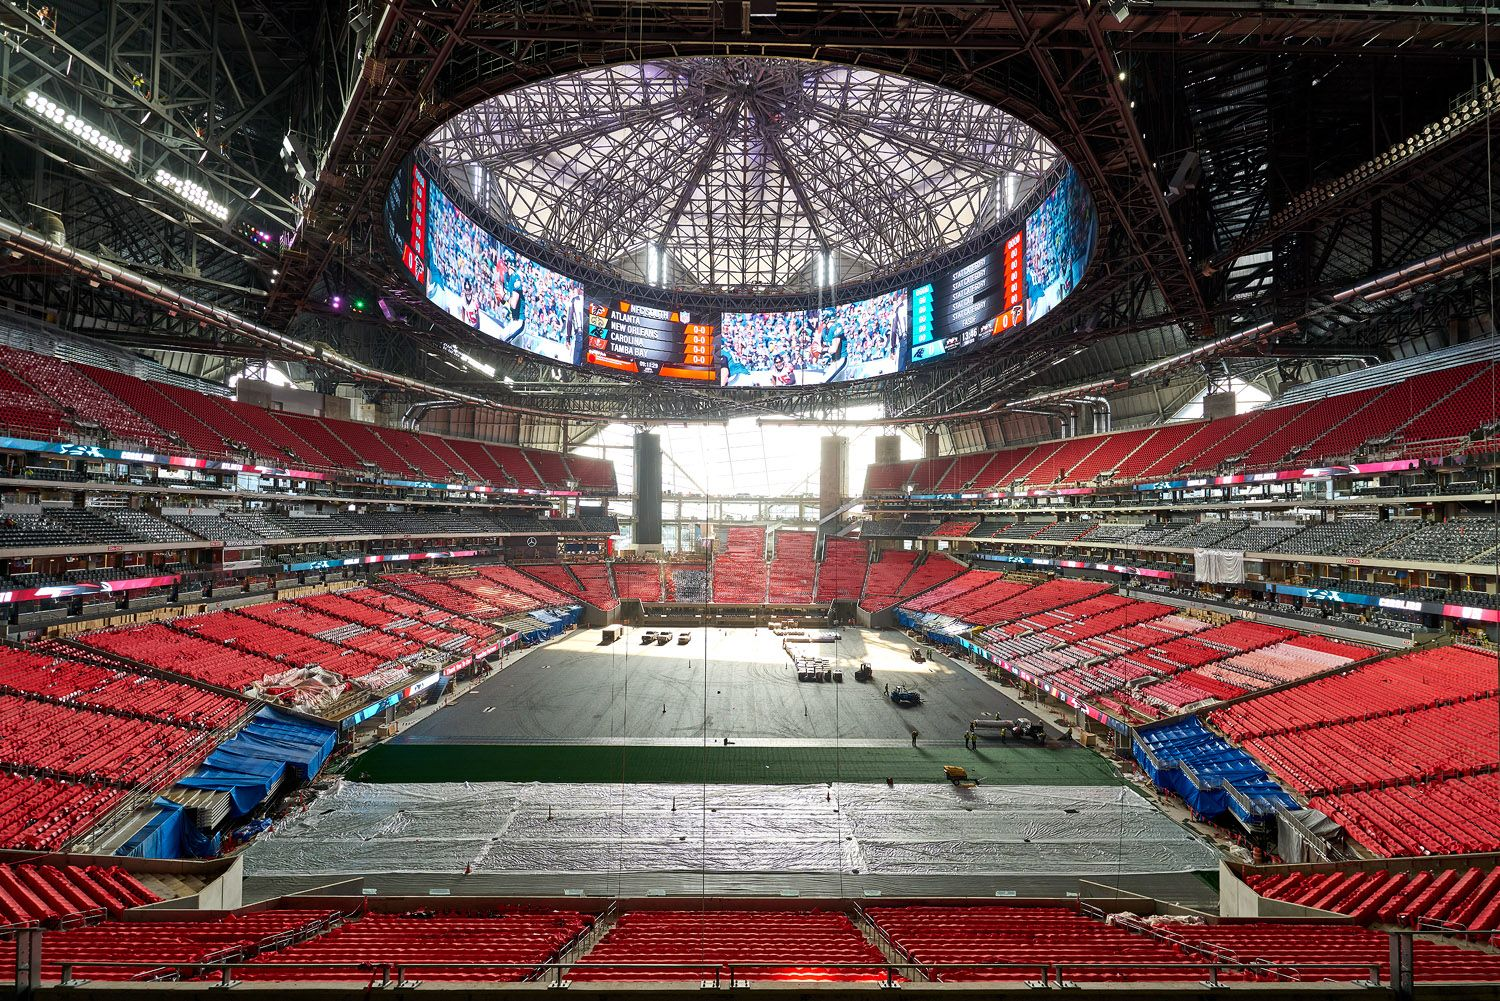 Pin By Atlutd On All About Mercedes Benz Advertising Photography Stadium Photo